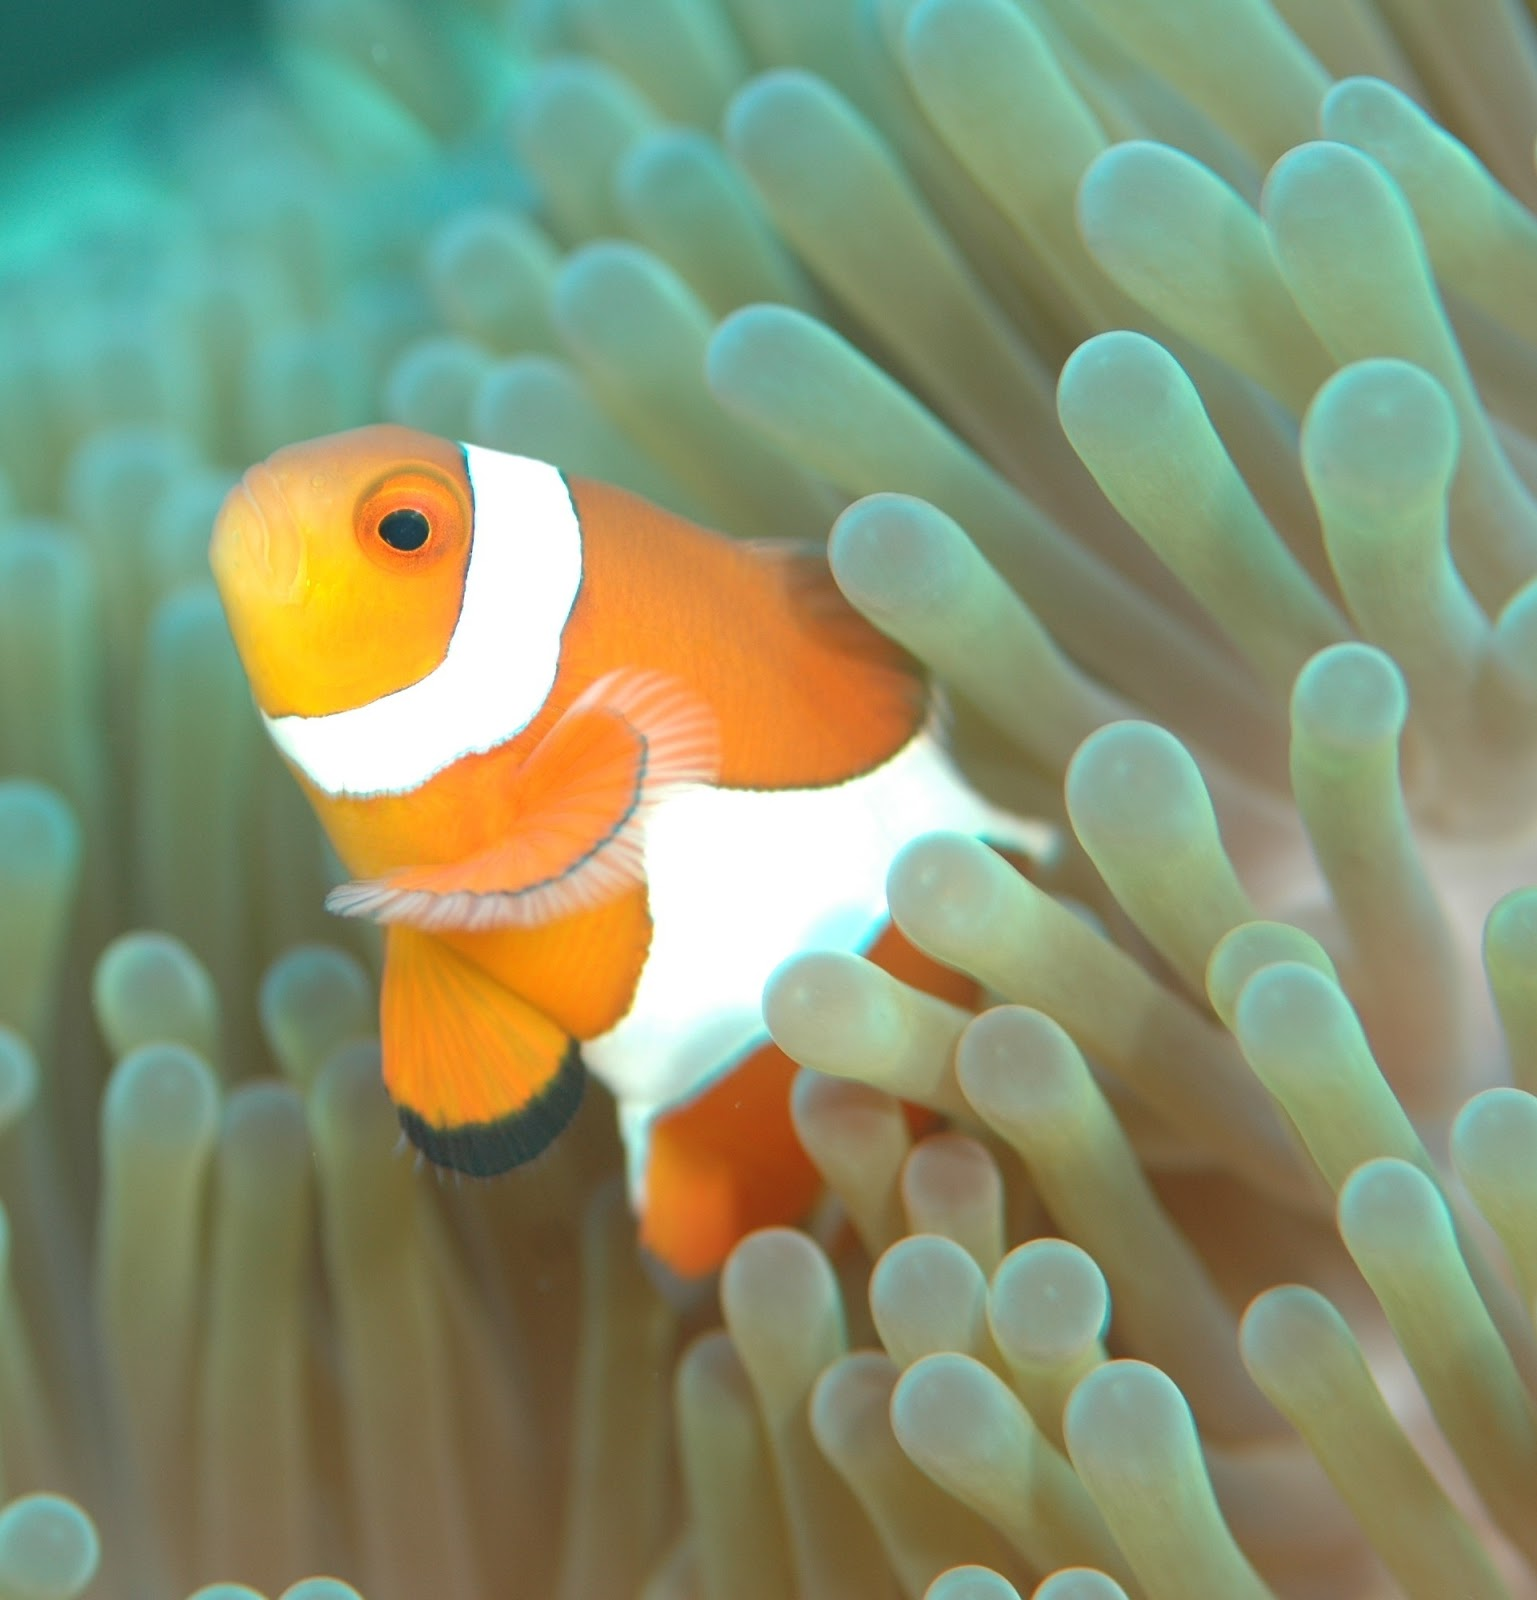 Image of a clown fish emerging from sea anemone.